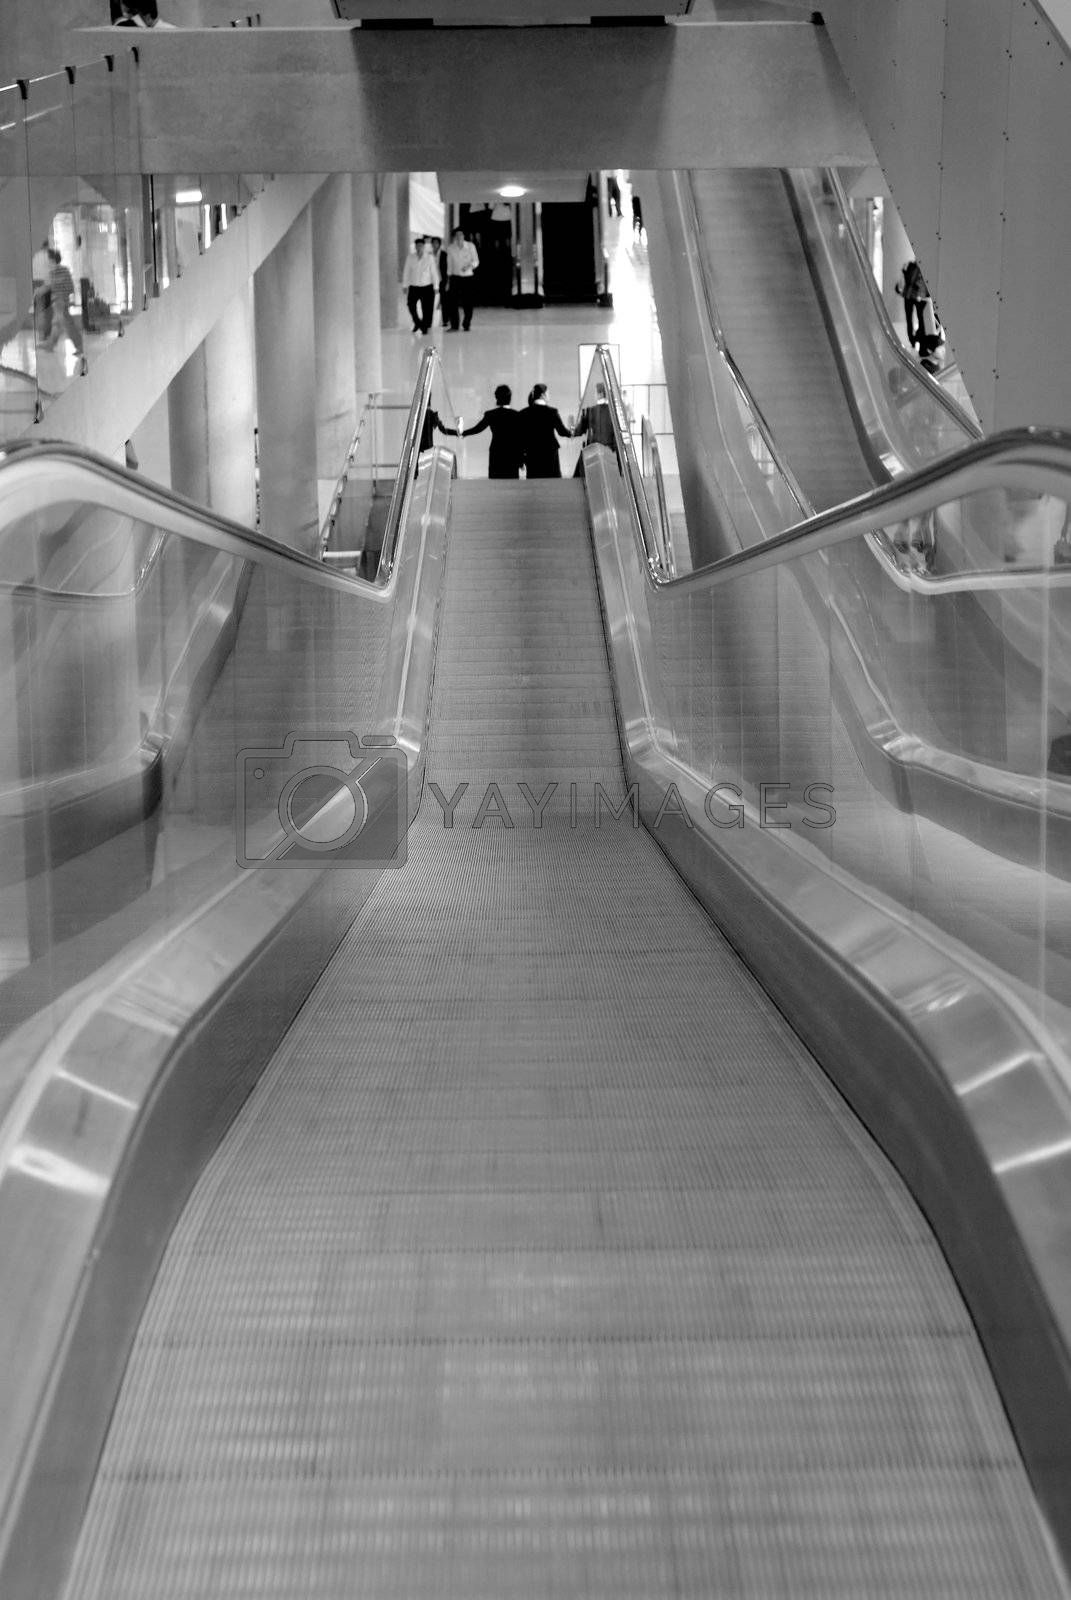 Escalators at airport by epixx